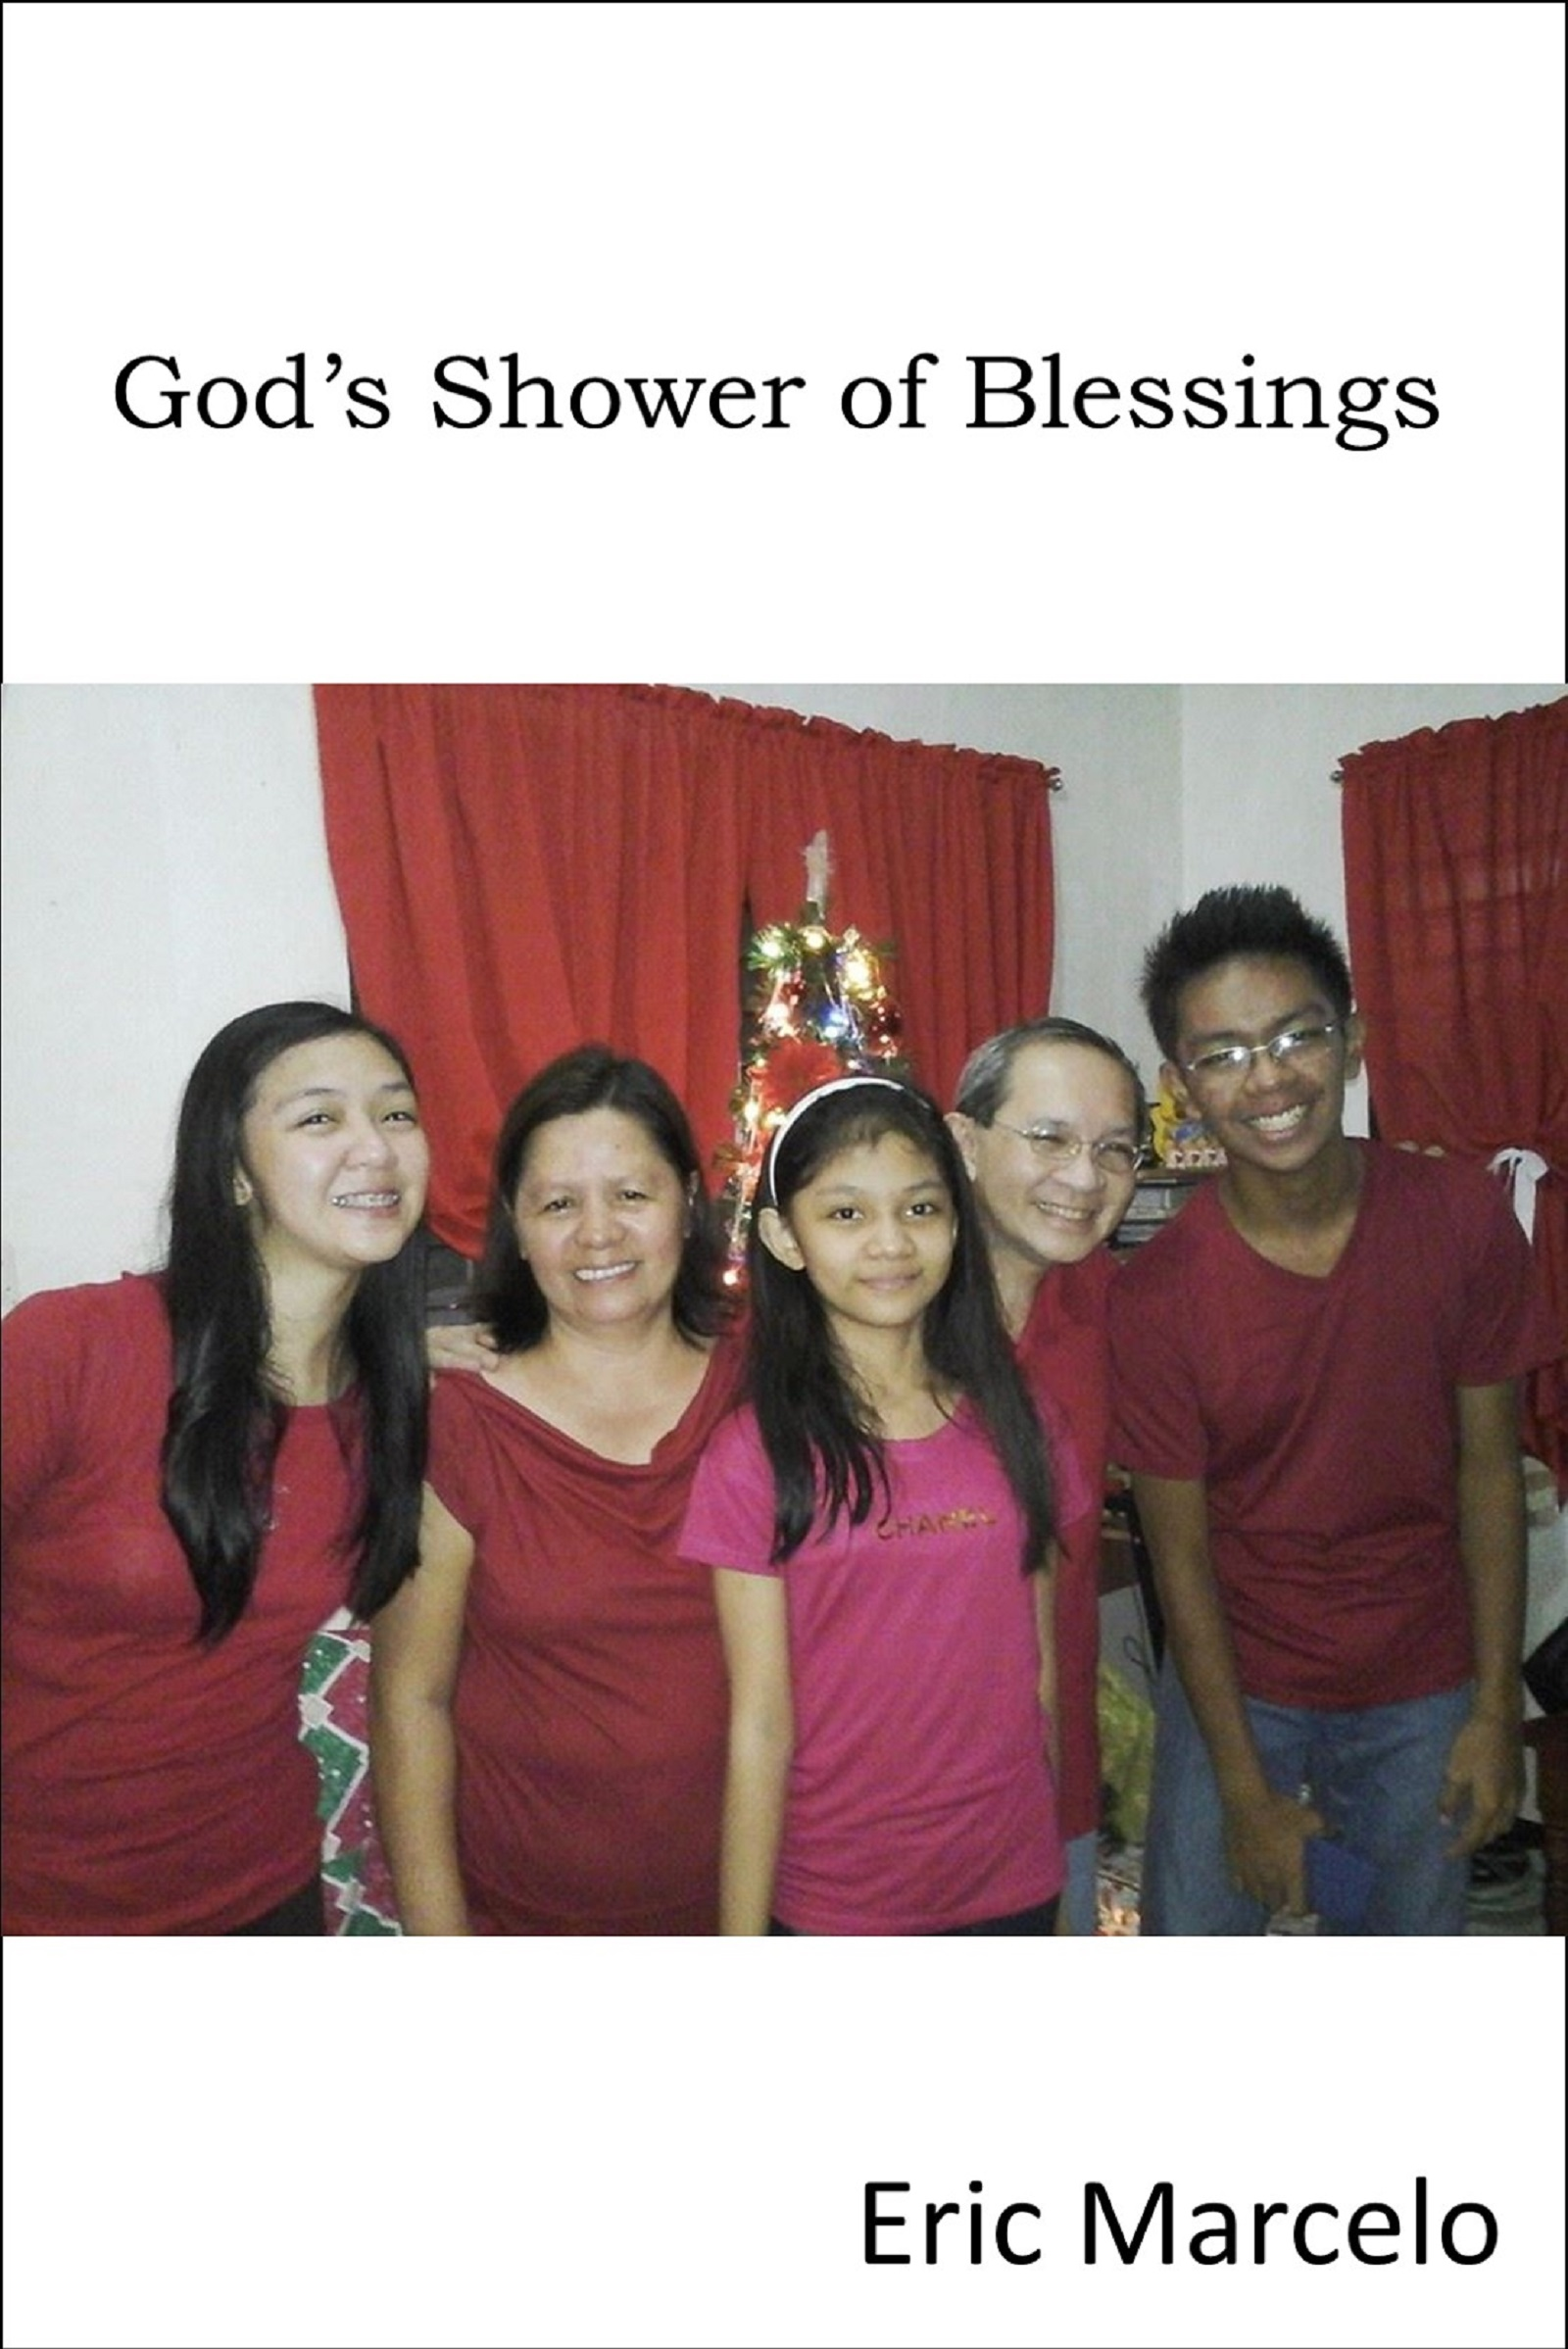 God's Shower of Blessings